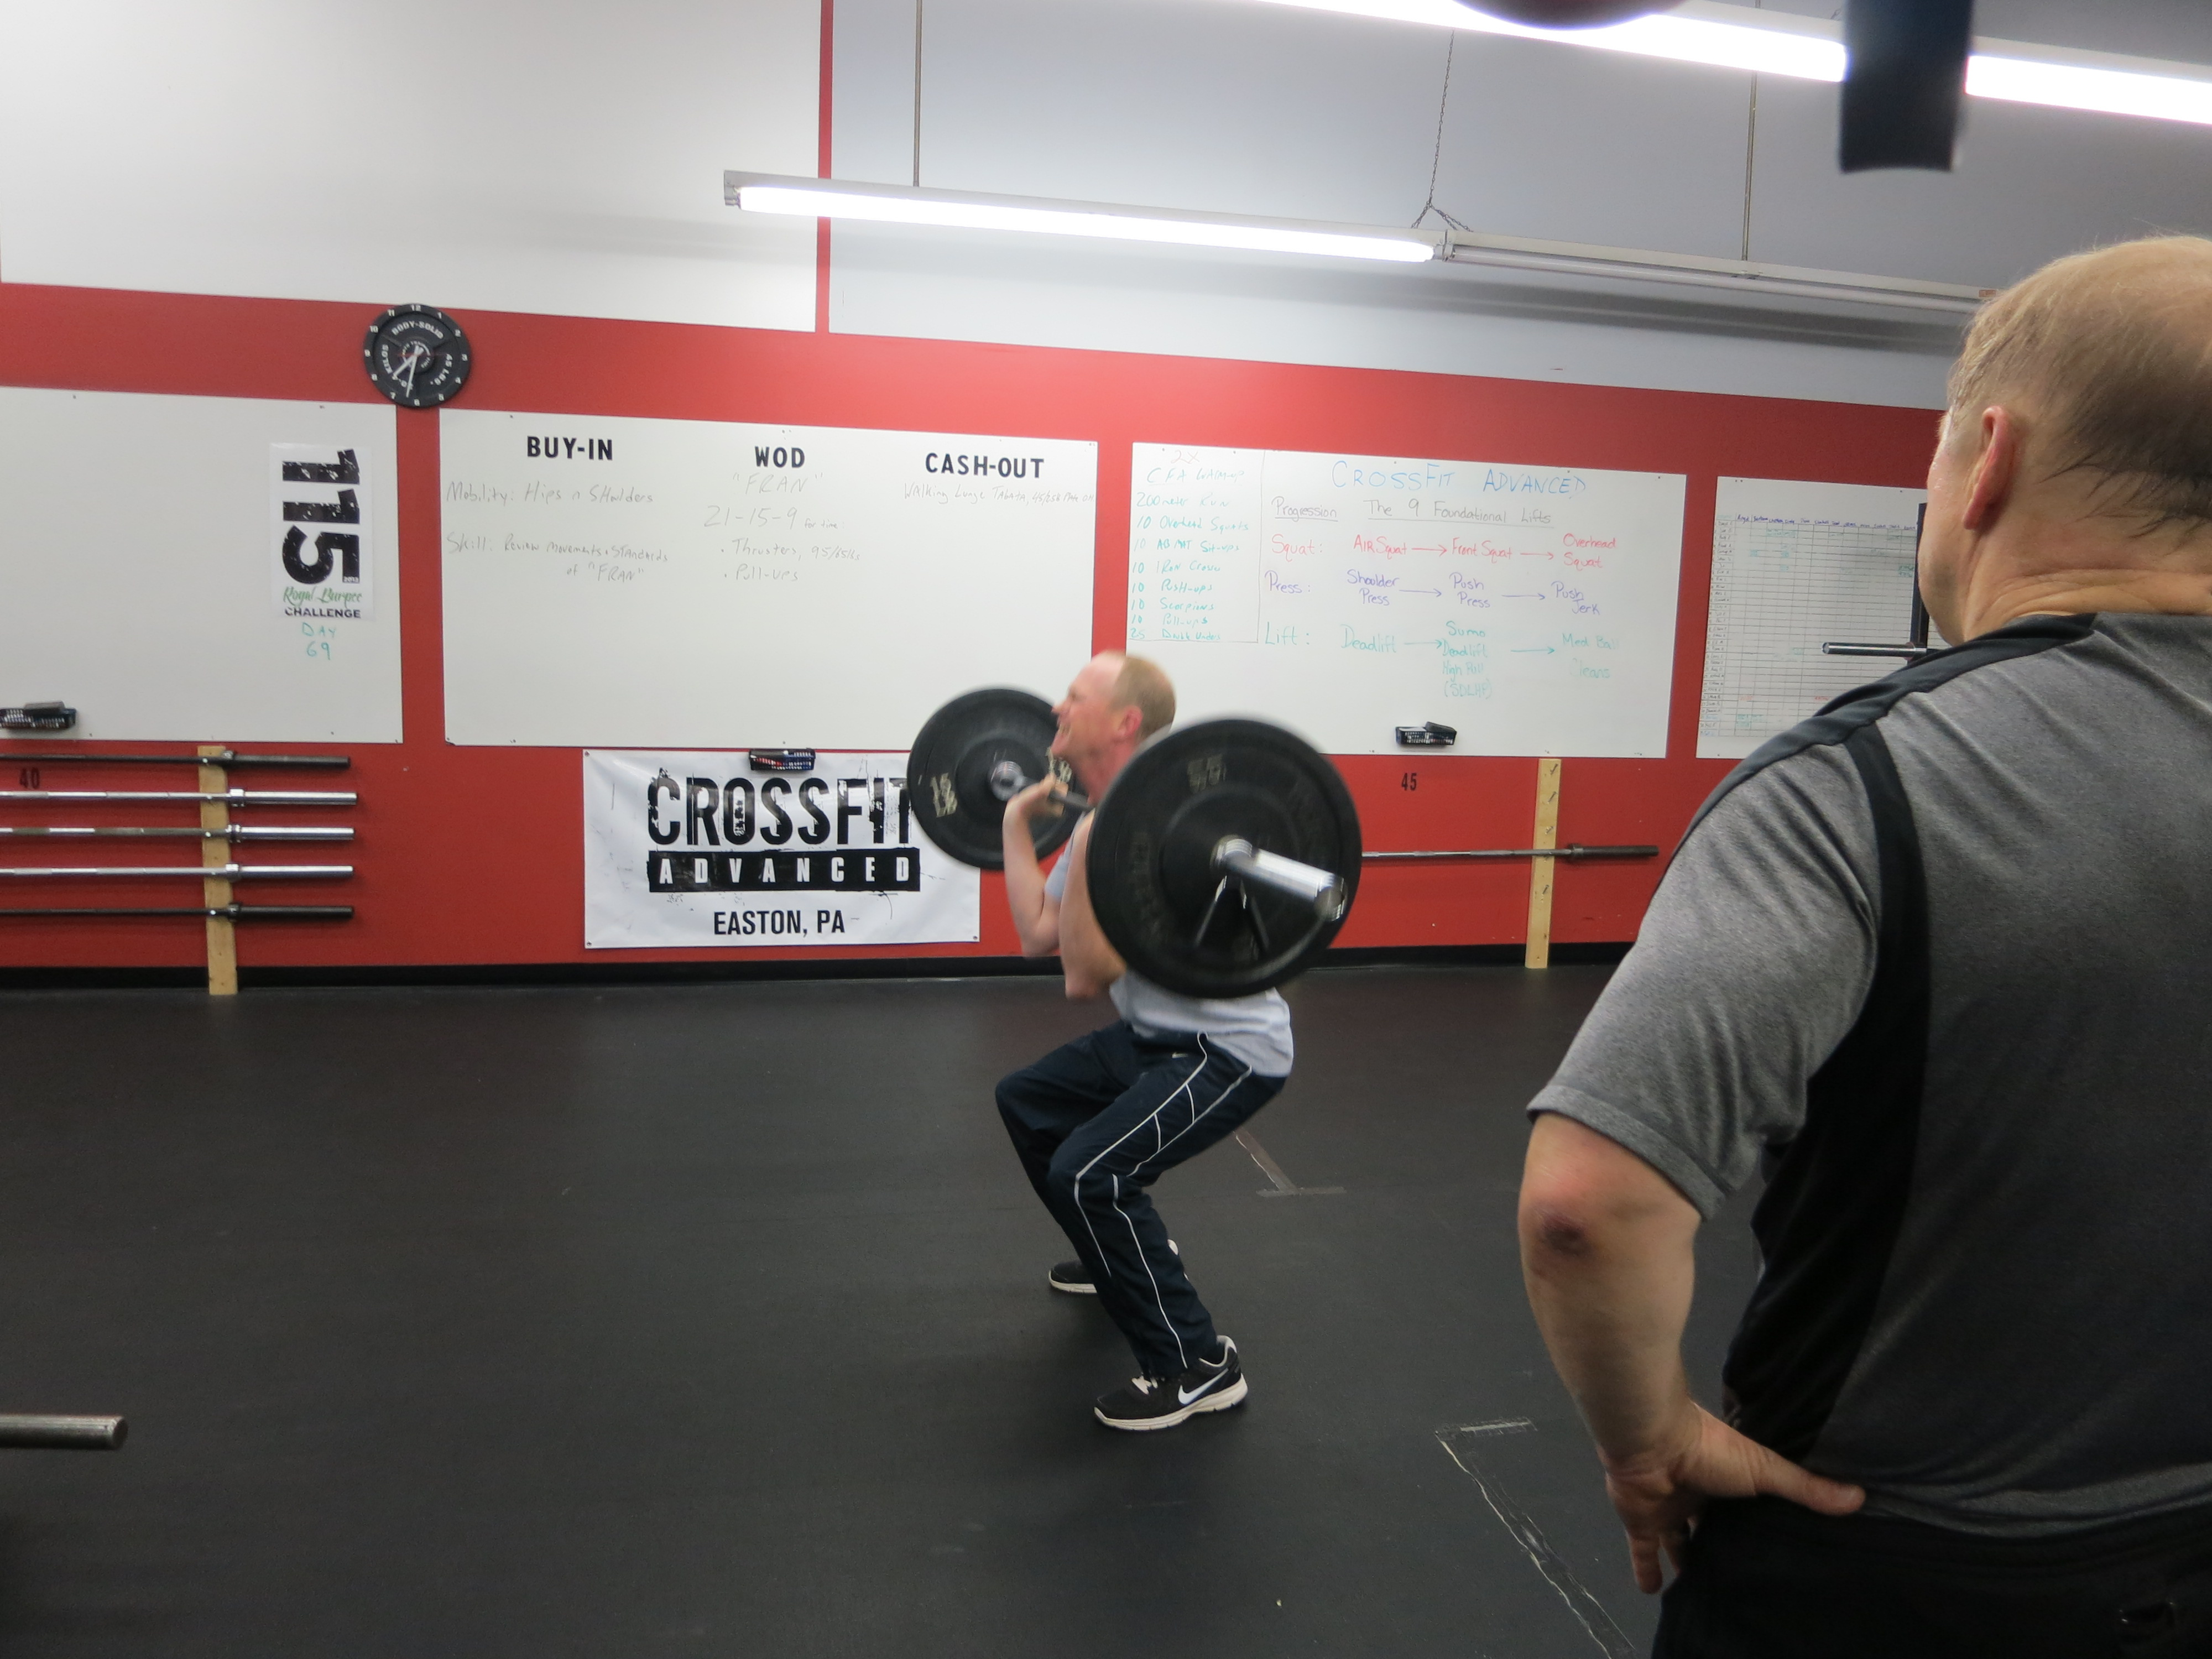 Tuesday, October 2 WOD